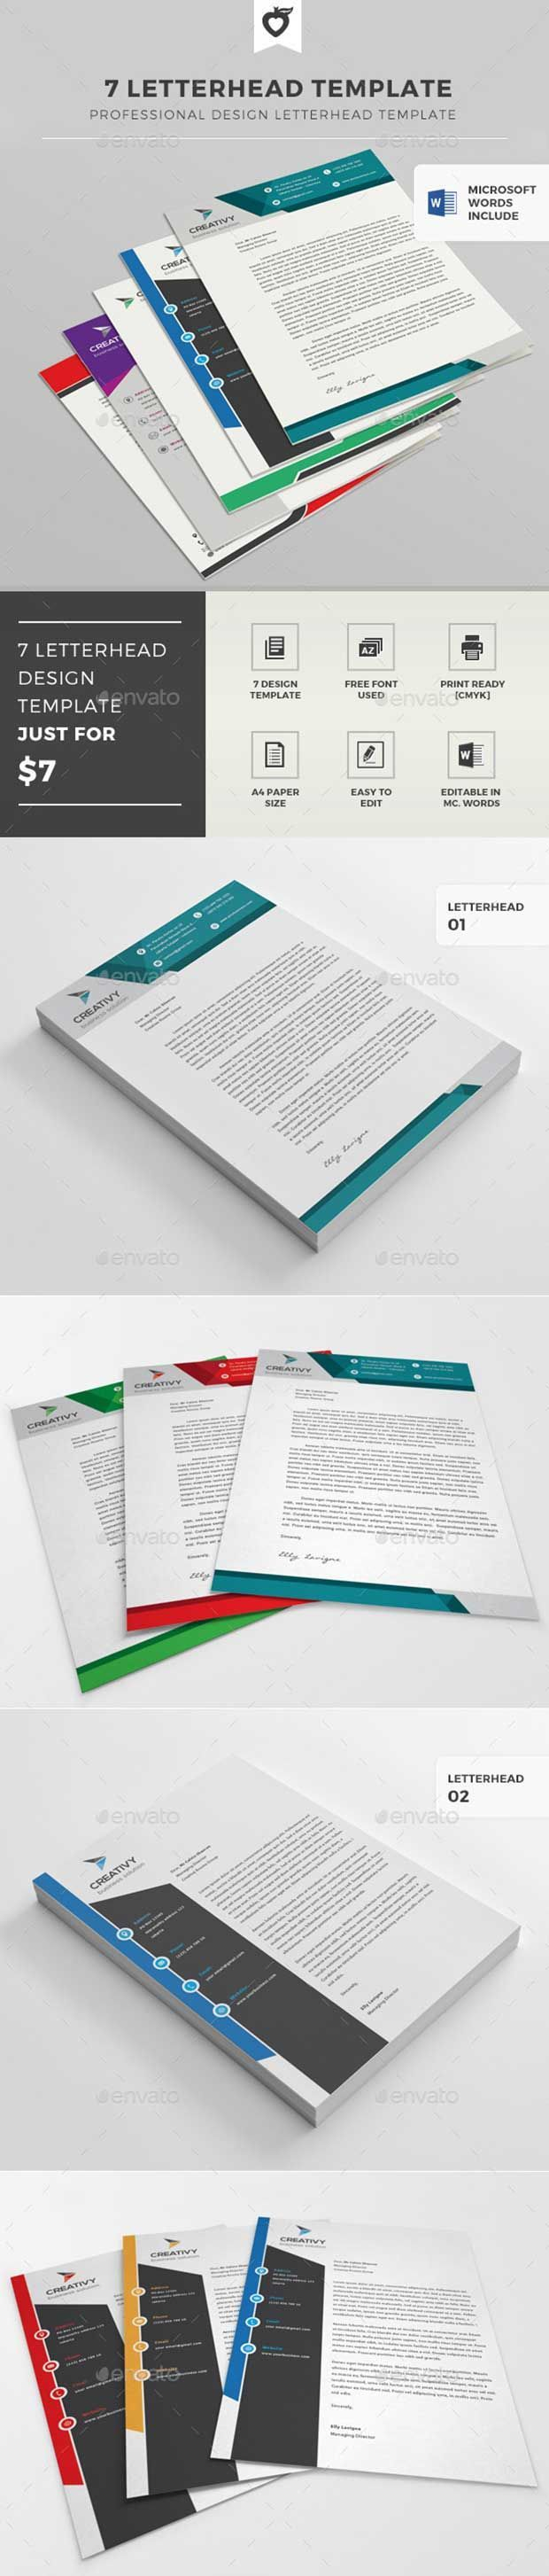 best letterhead format ideas pinterest simple cover charity donation letter legal requirements template business